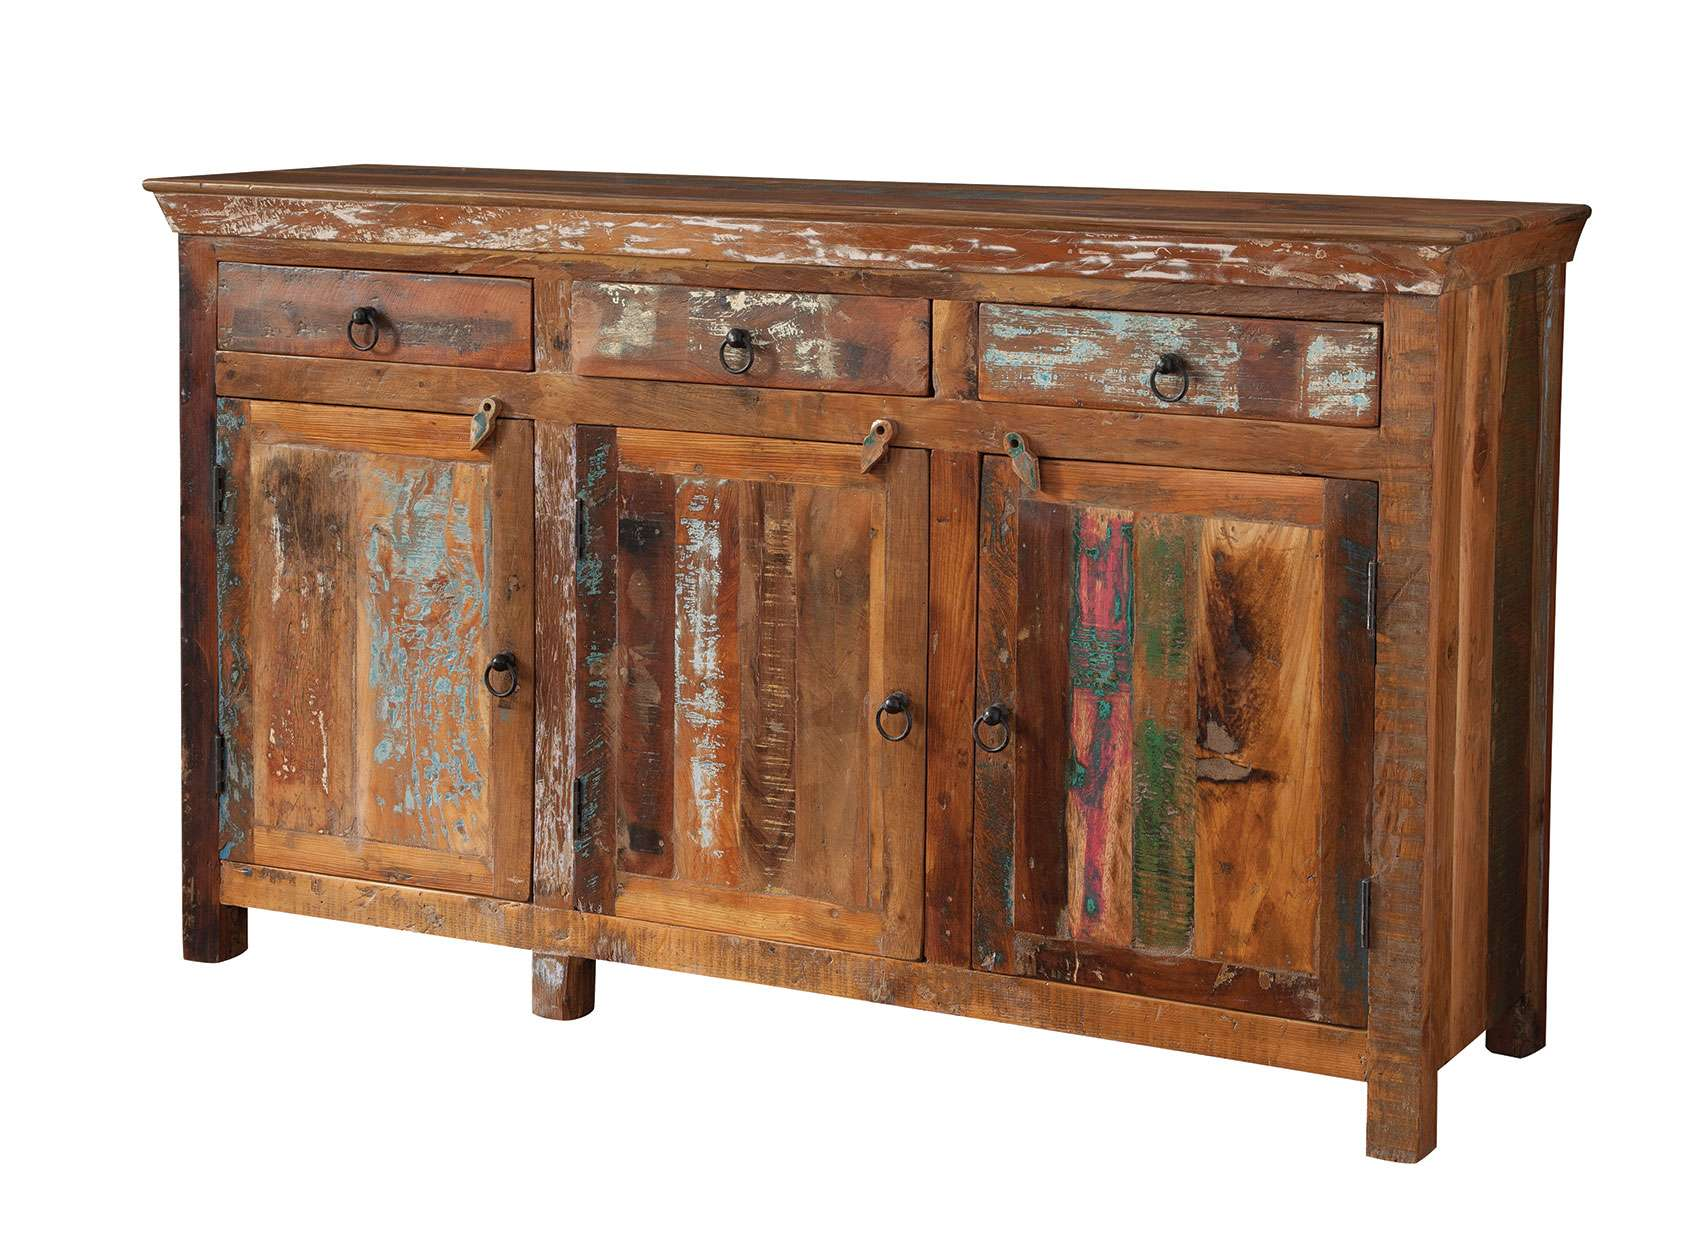 Reclaimed wood handcrafted accent cabinet with 3 drawers and 3 doors